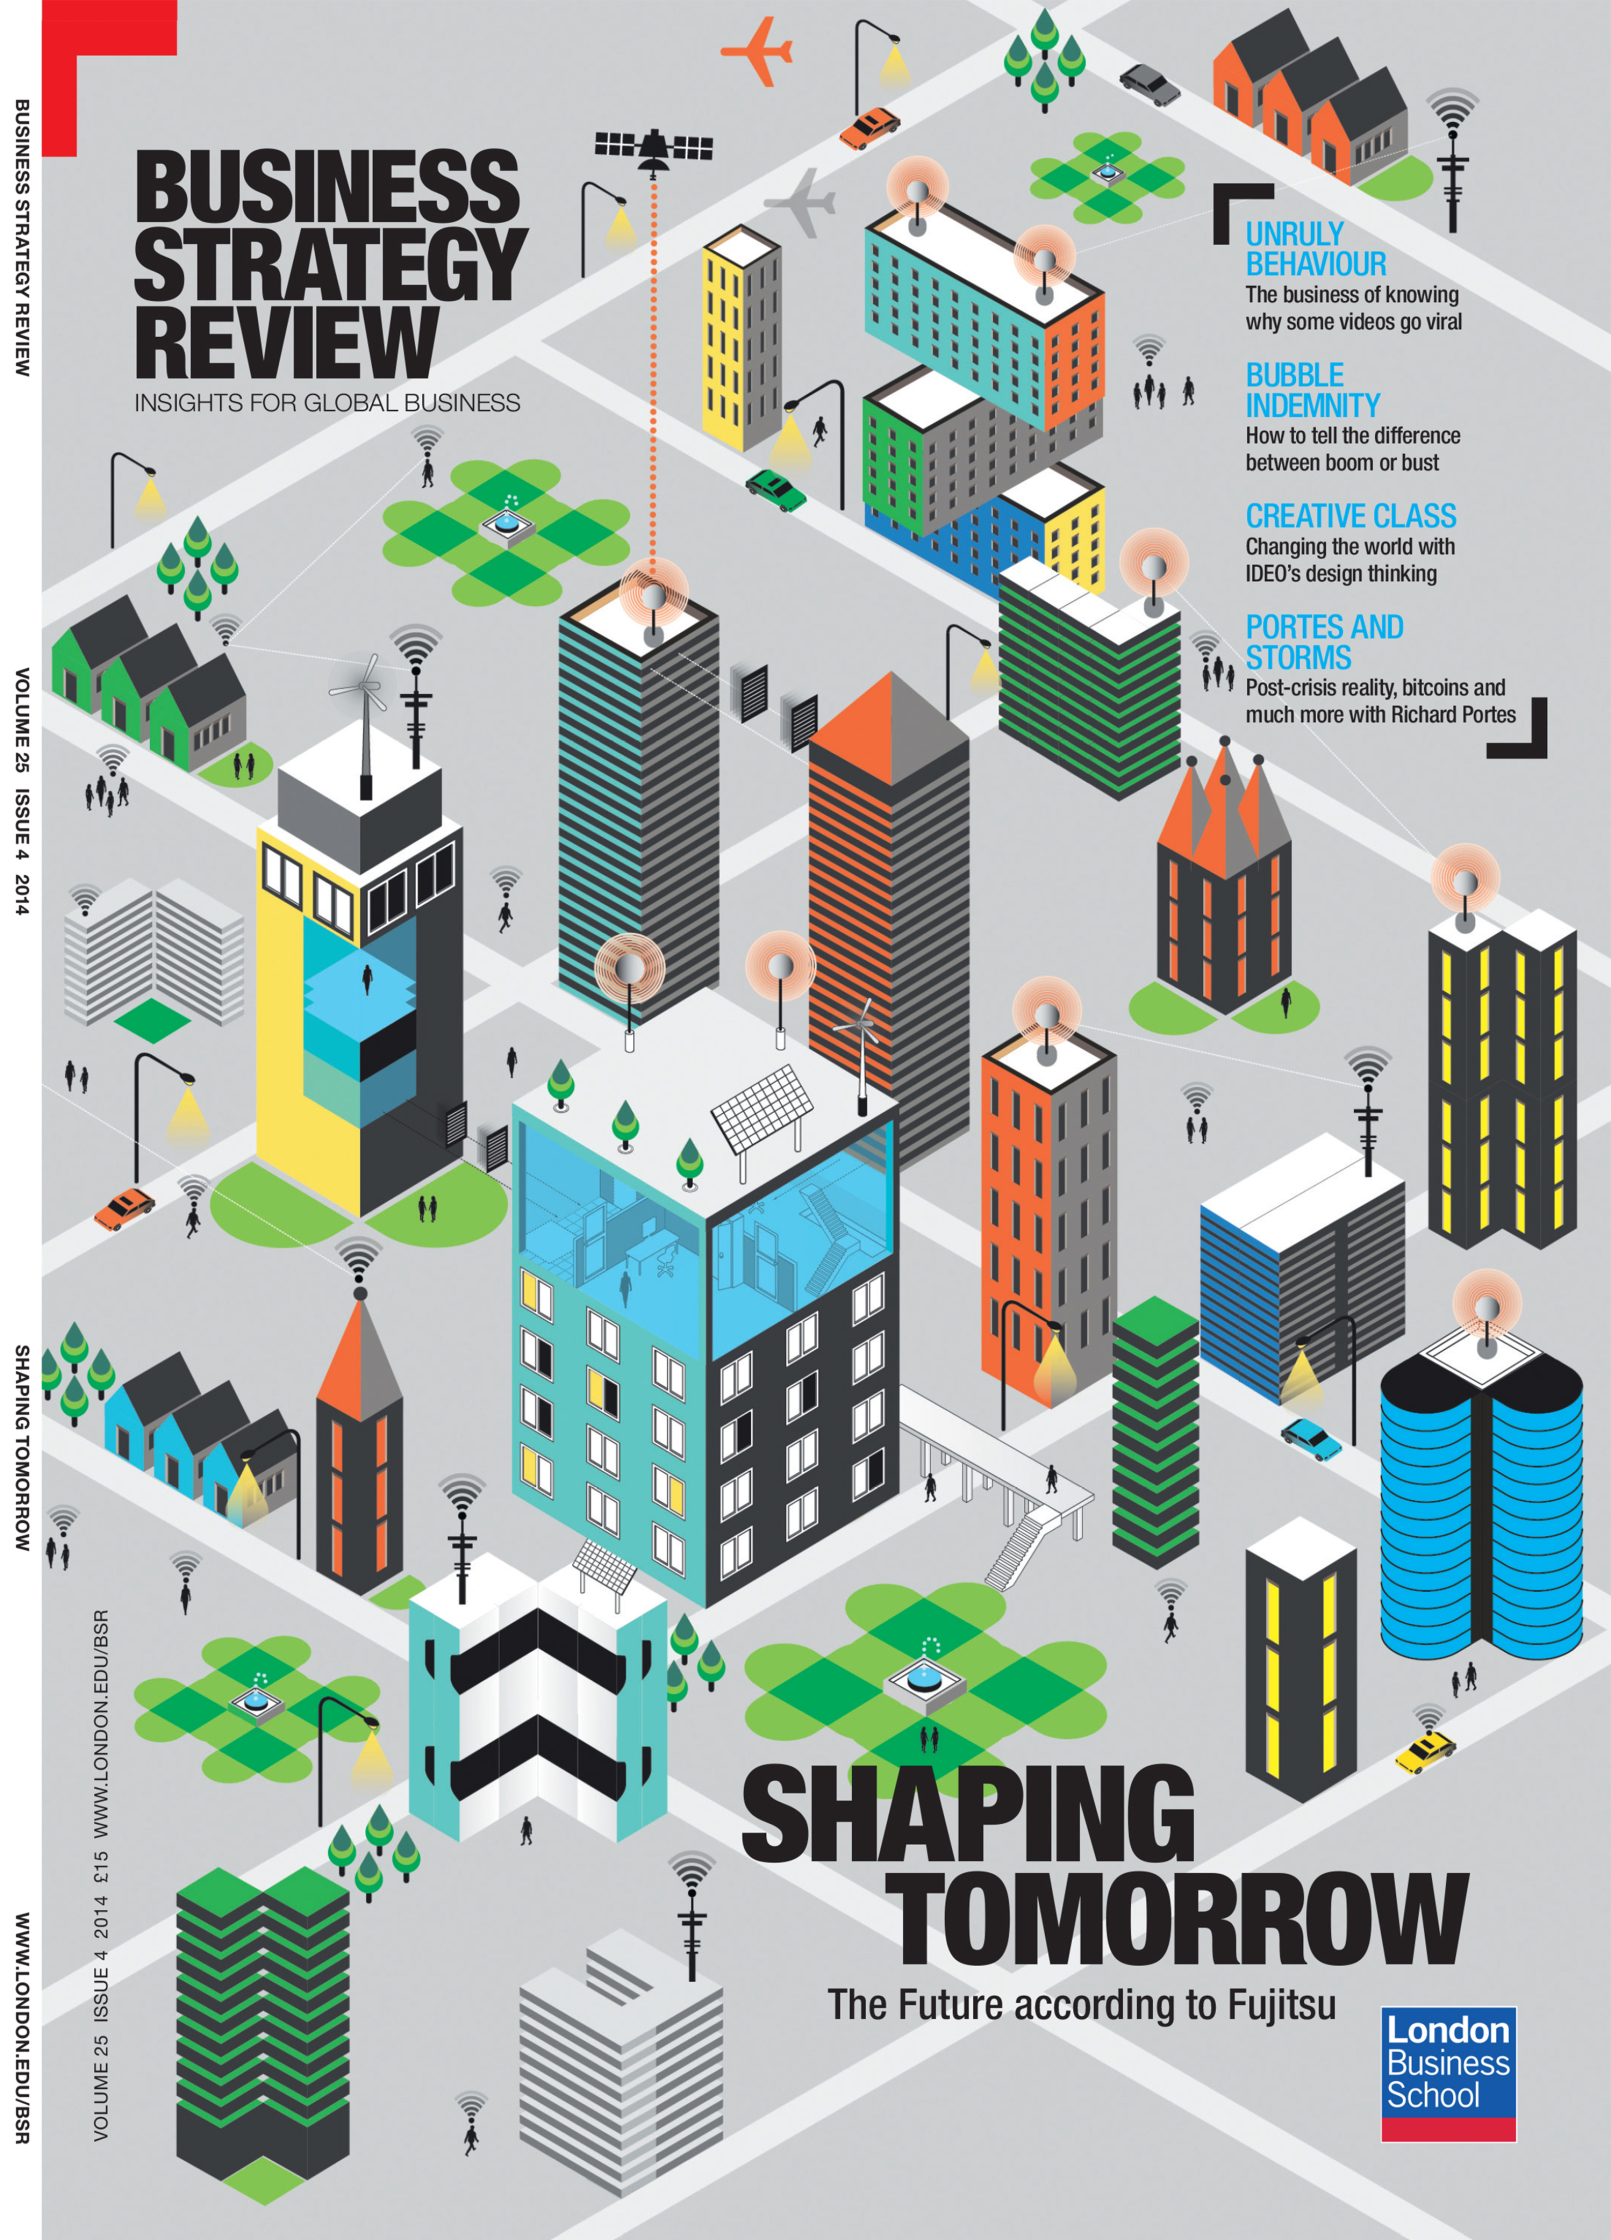 London Business School / Business Strategy Review